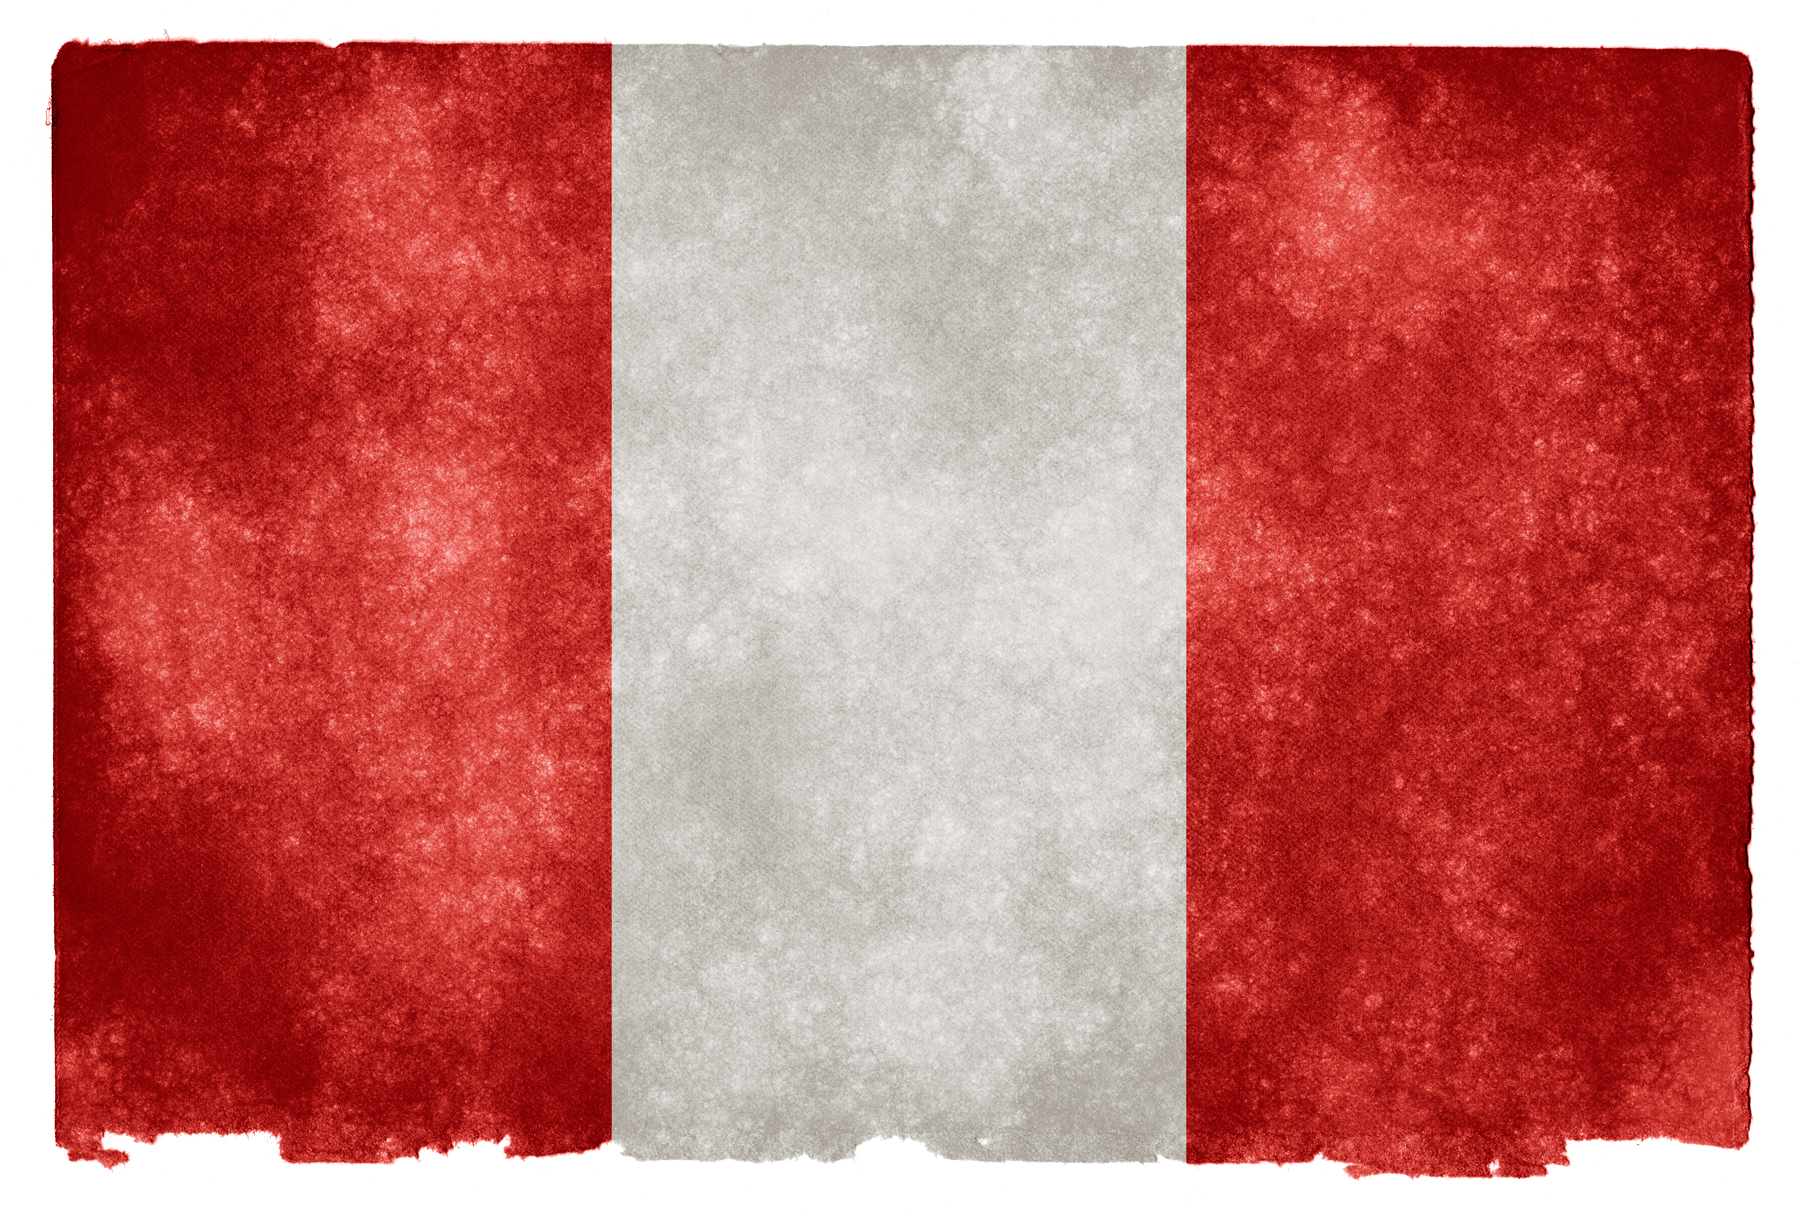 Peru Grunge Flag, Aged, Retro, Page, Paper, HQ Photo